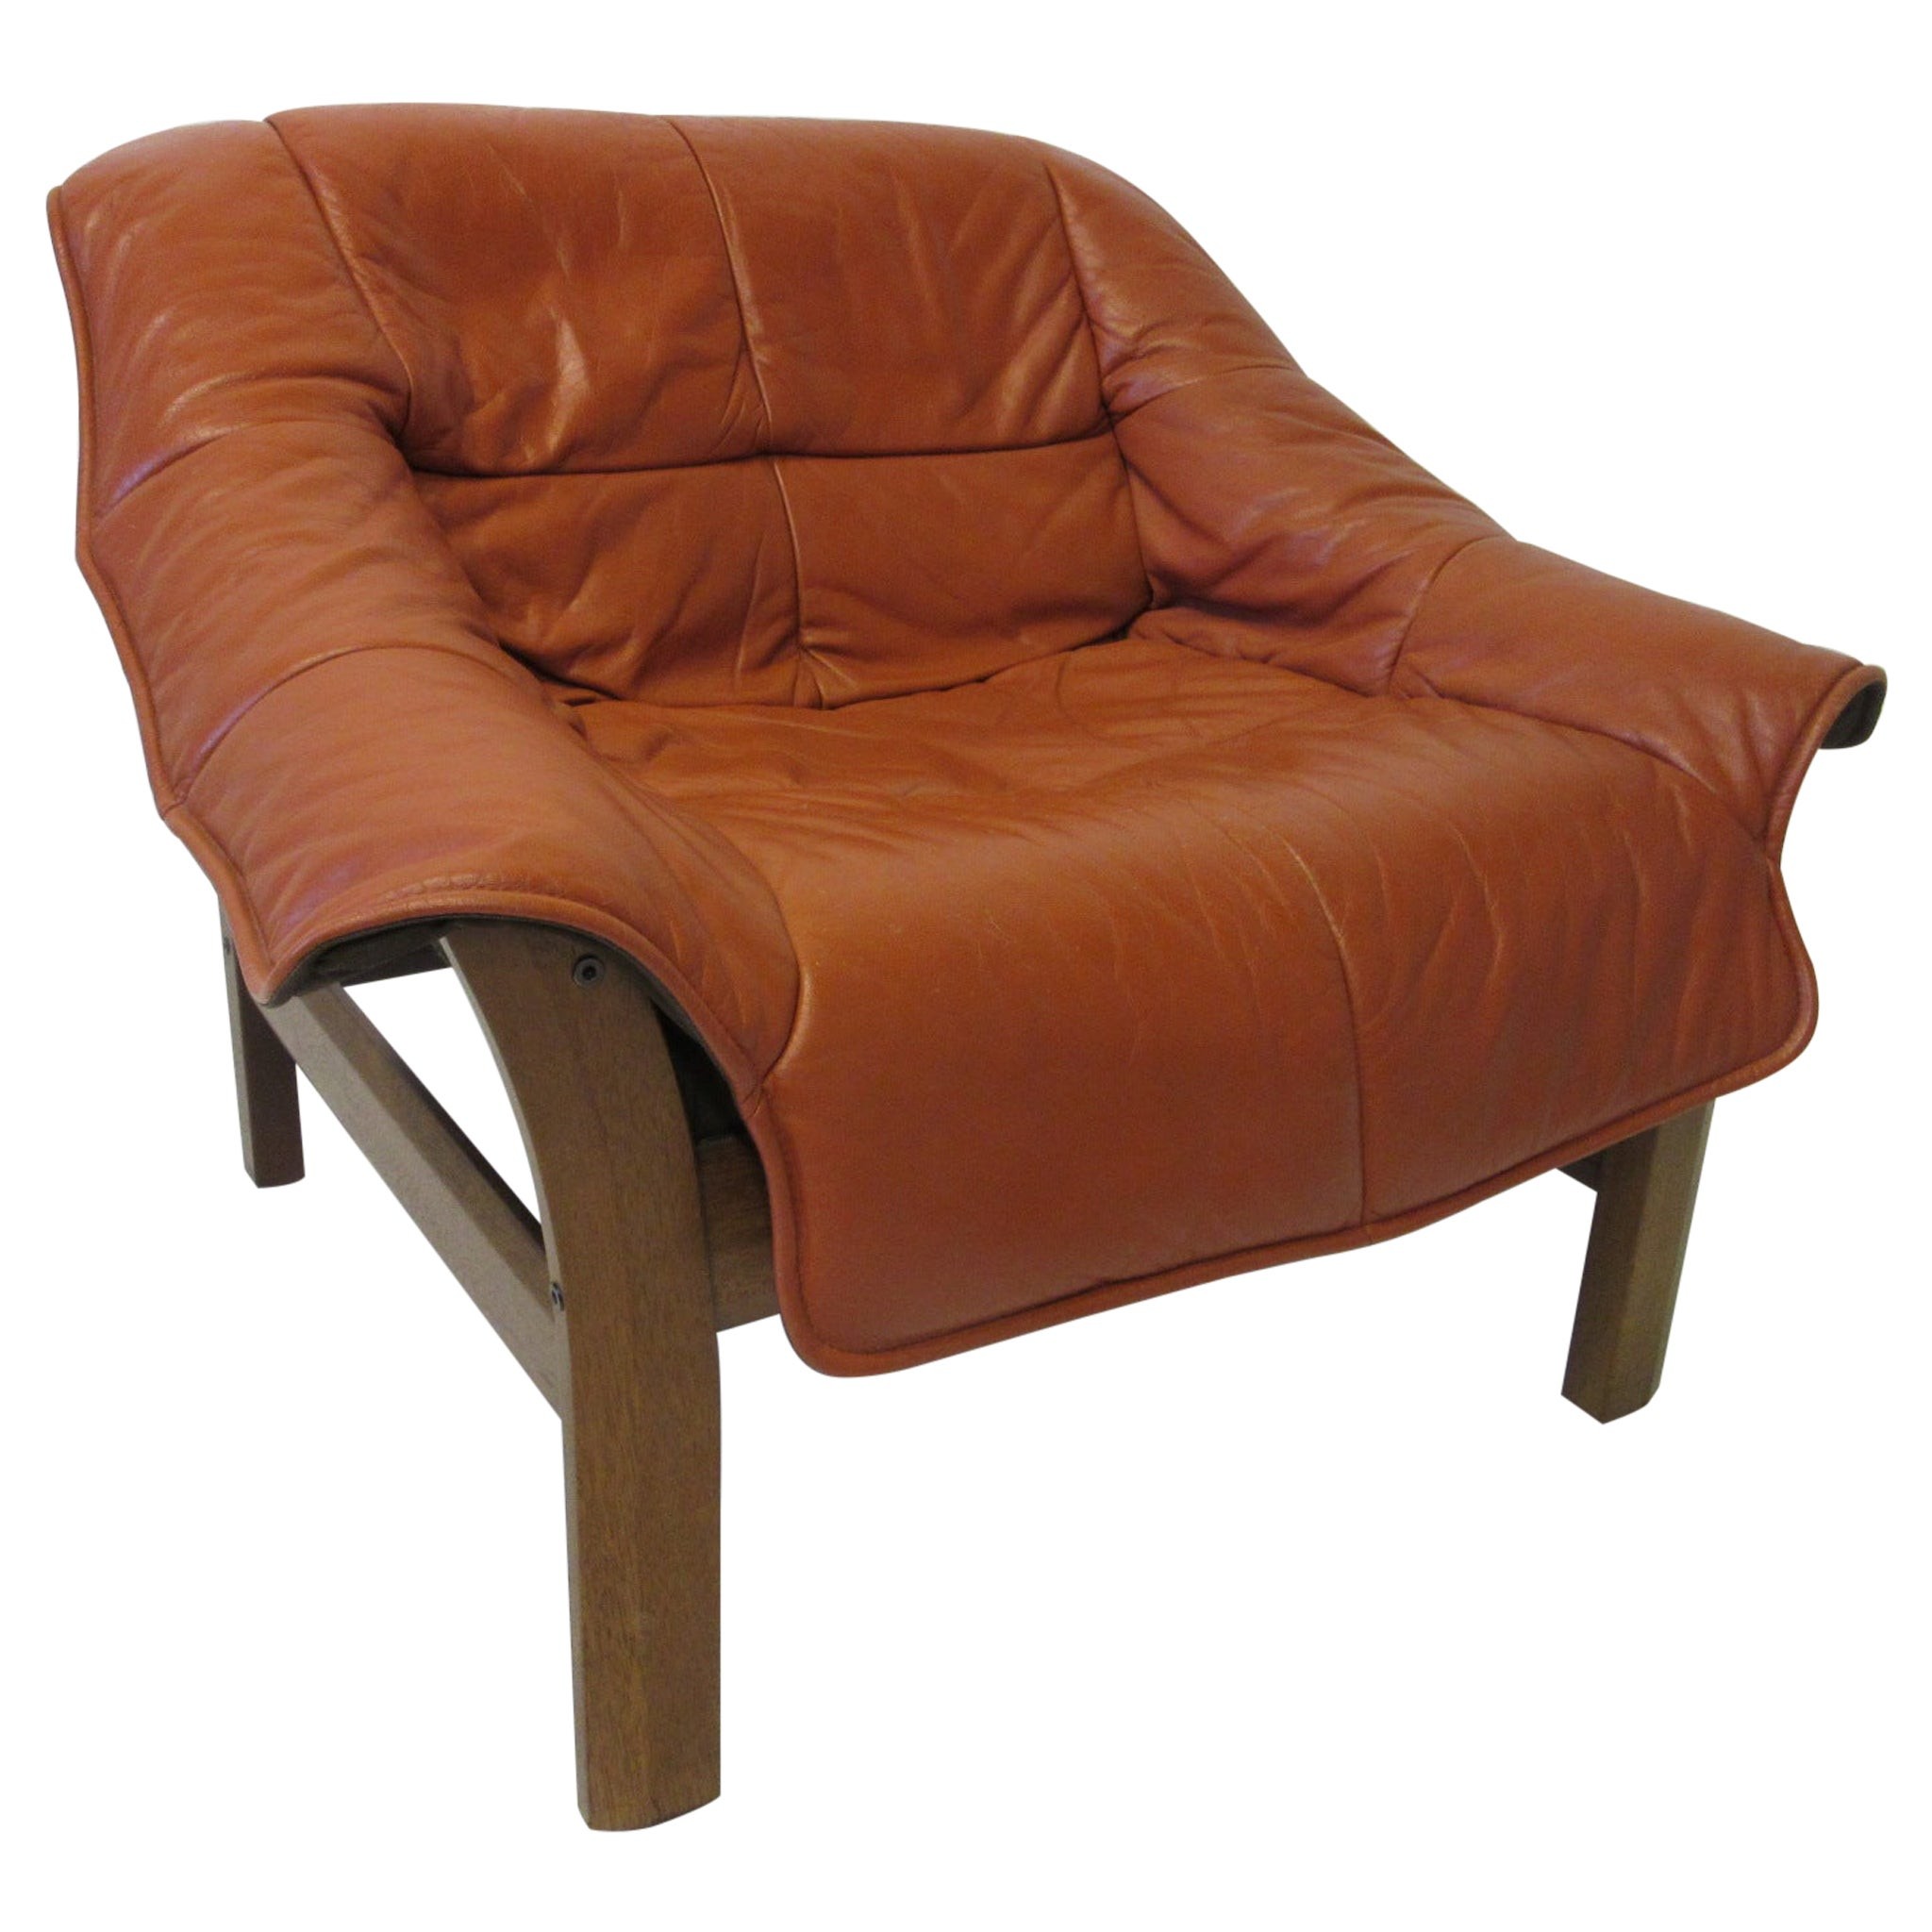 Leather and Rosewood Lounge Chair by Percival Lafer, Brazil